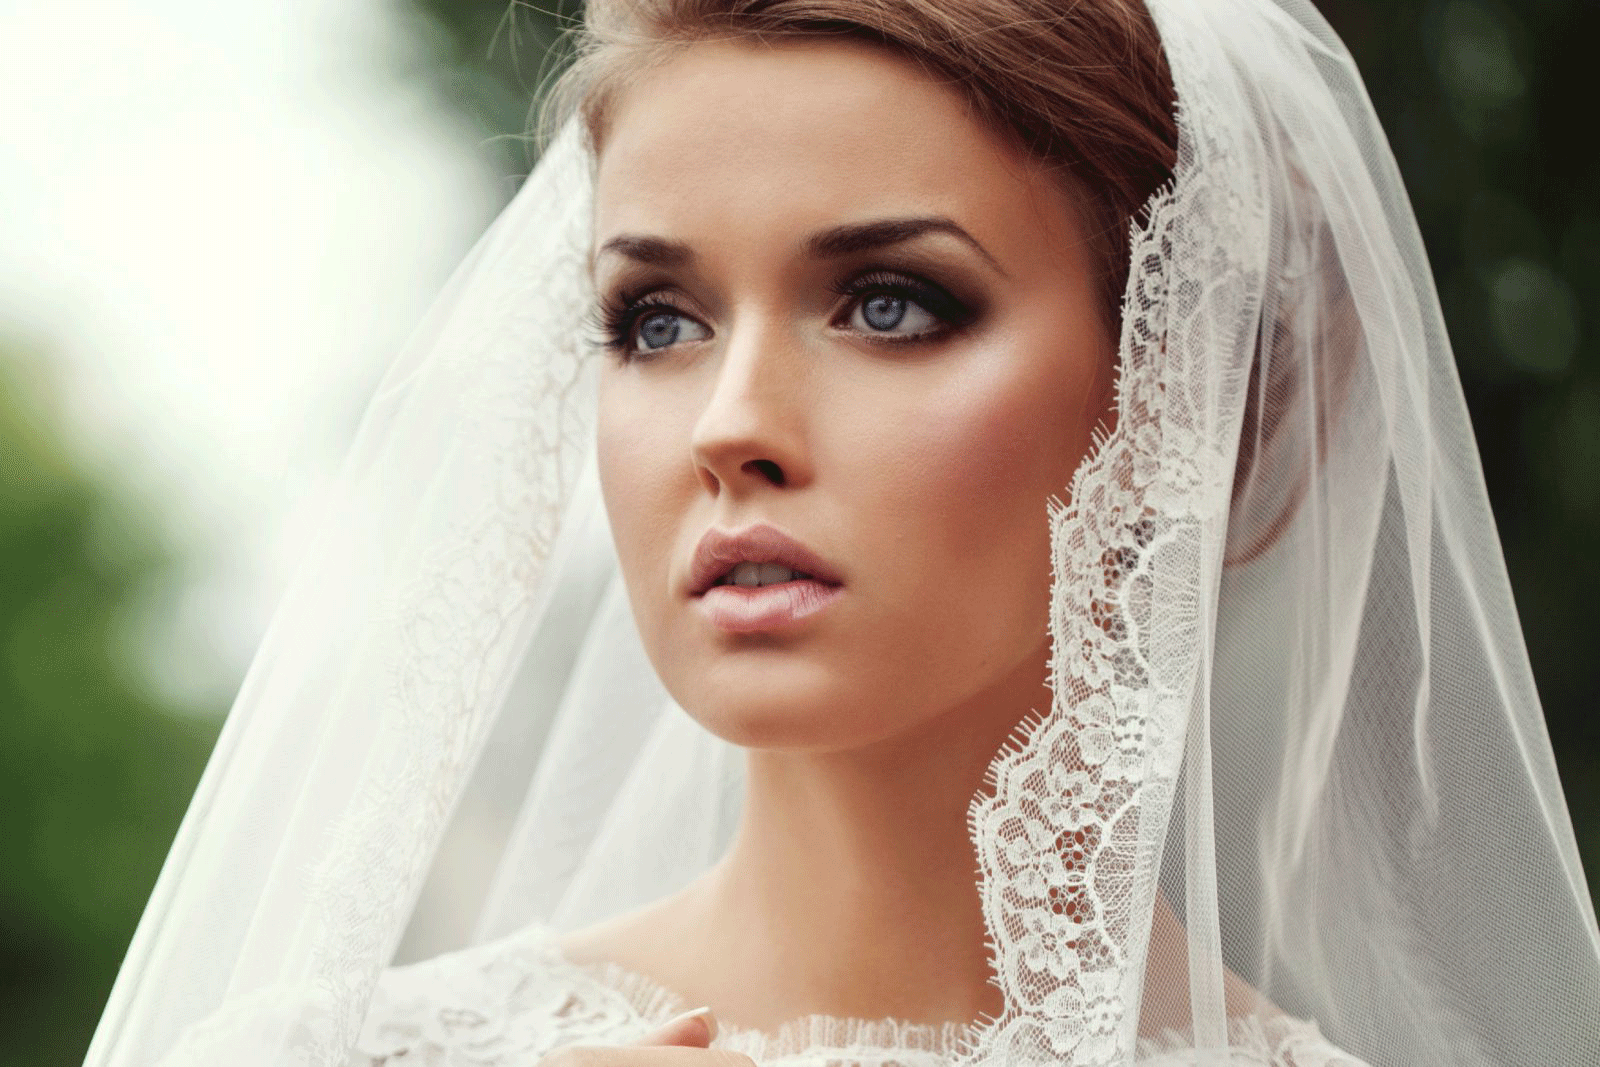 beauty-wedding-makeup1600-x-1067-712-kb-png-x